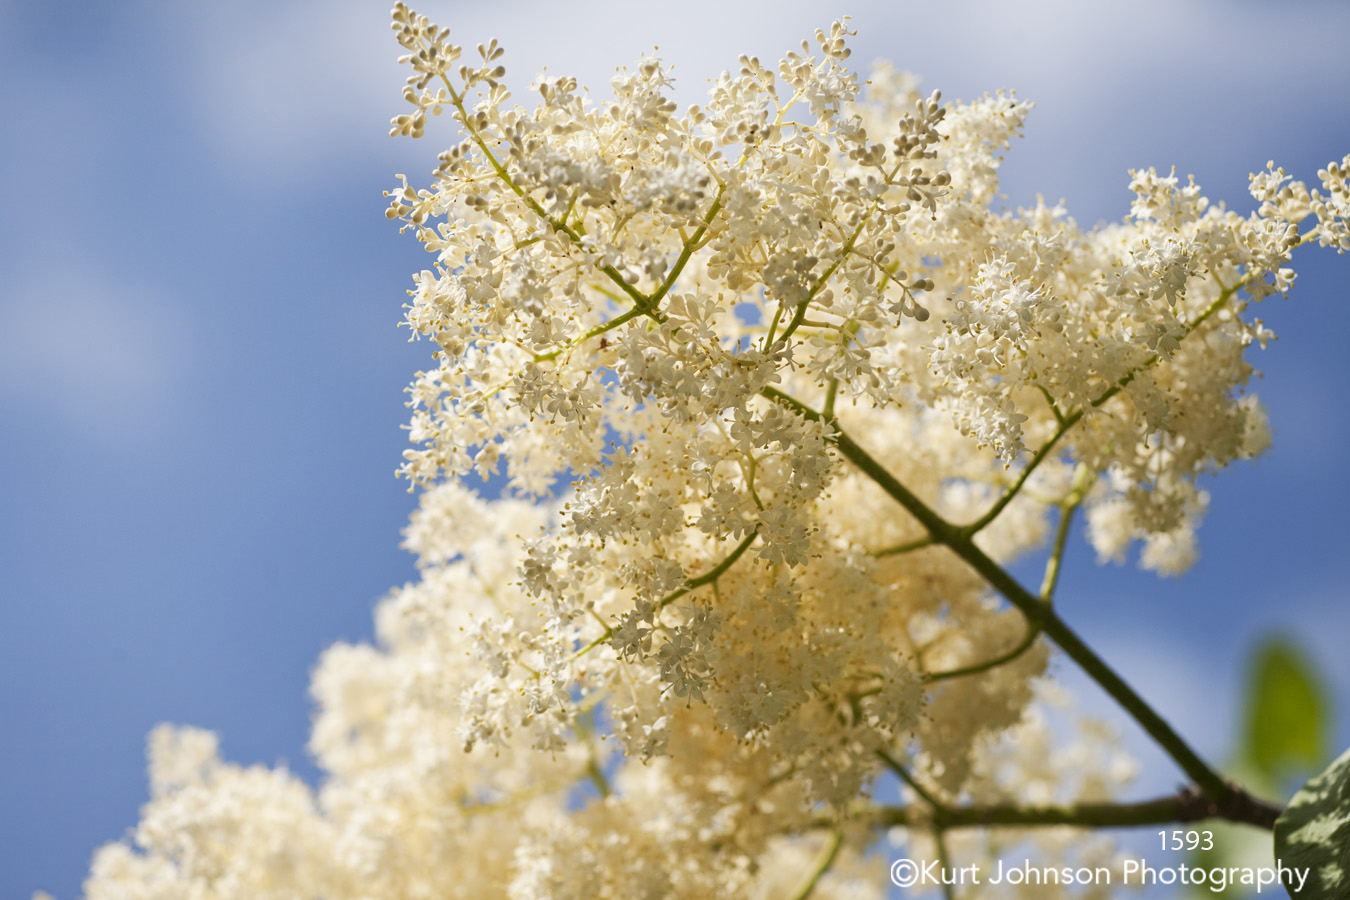 white grass grasses flower buds tree trees bloom close up macro detail blue sky